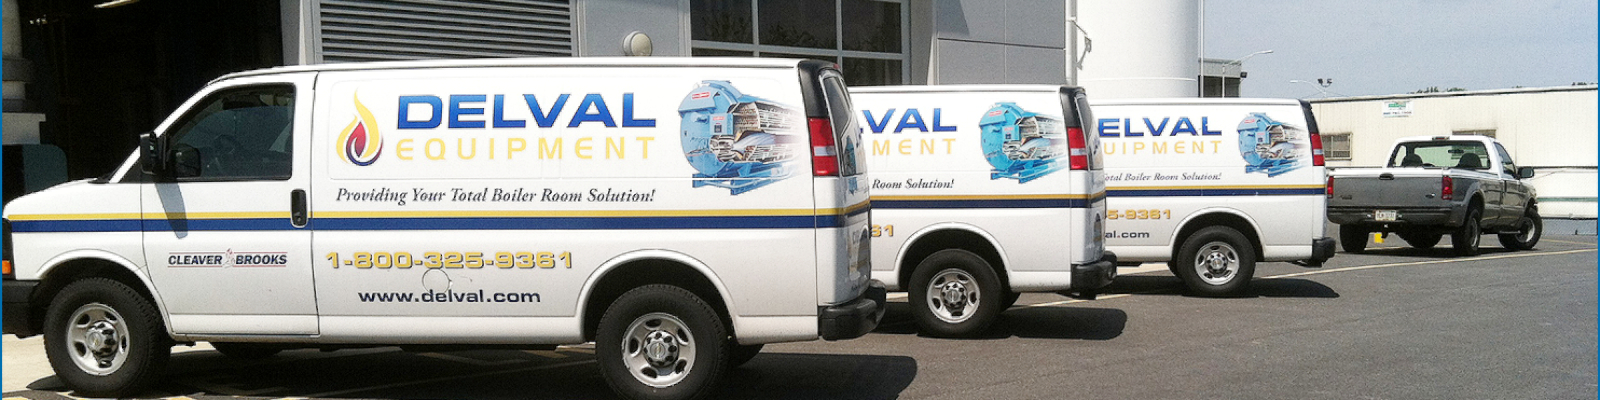 Delval Equipment - Emergency Service